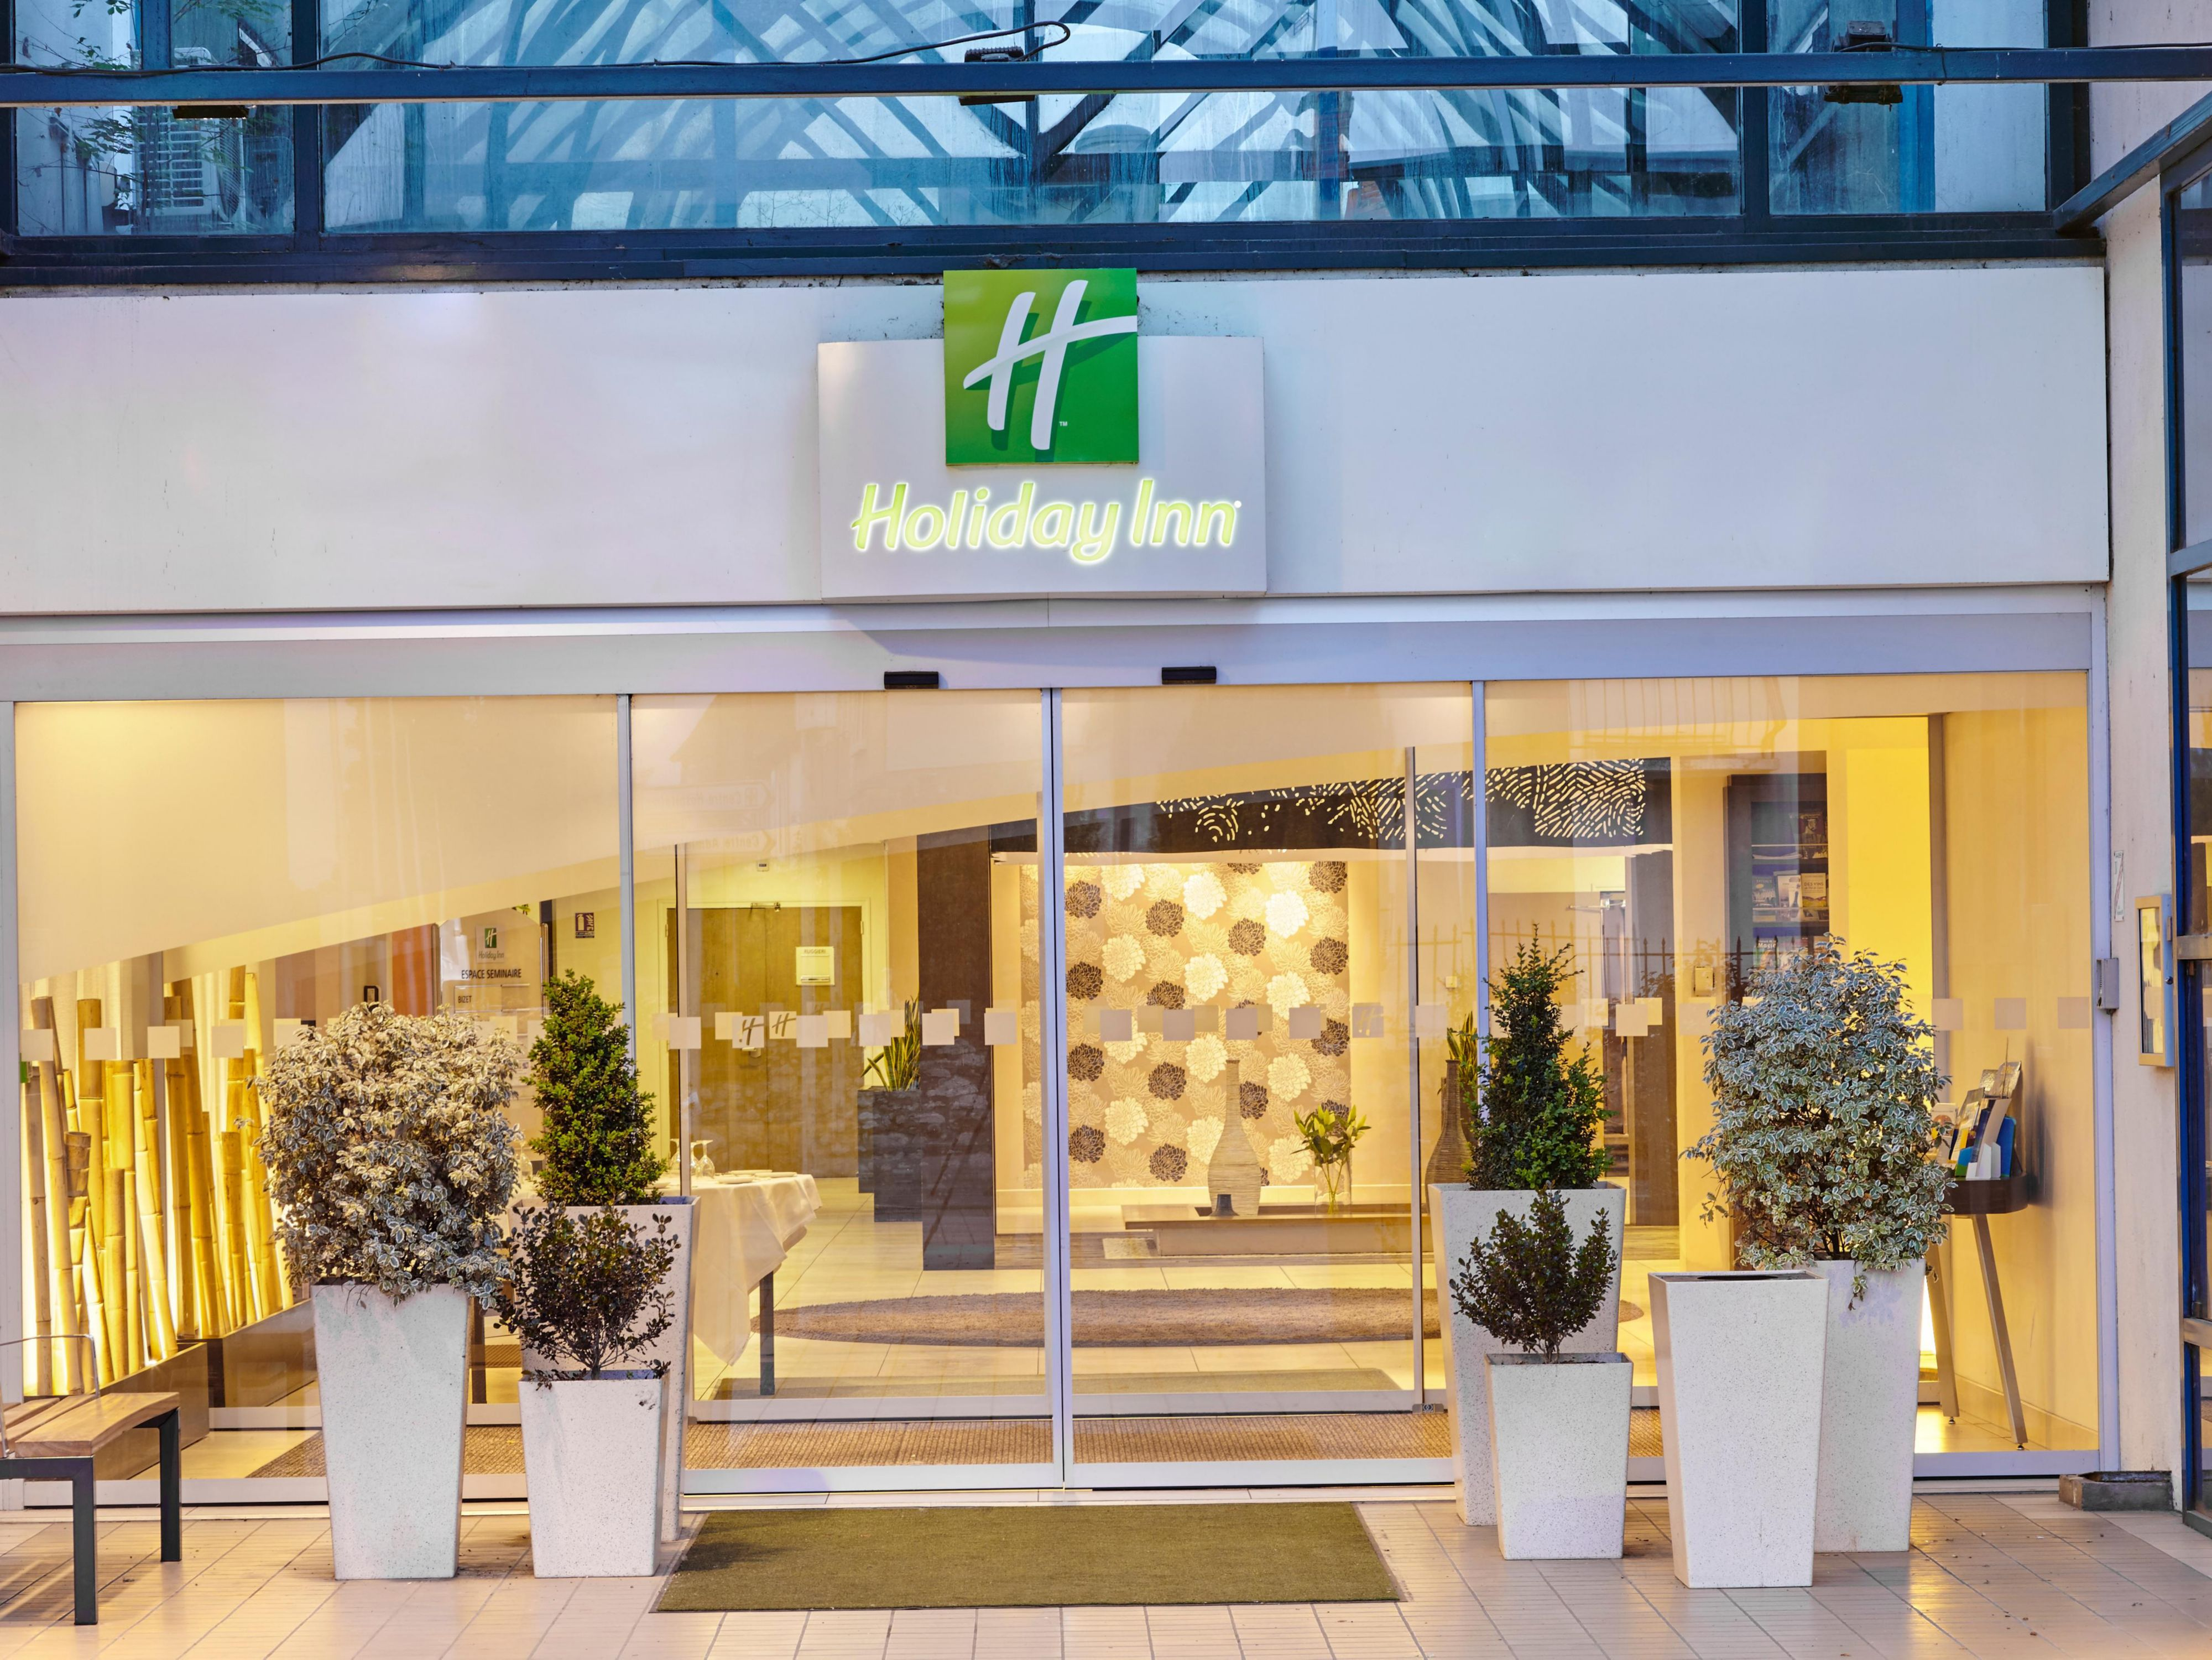 Welcome to Holiday Inn Blois